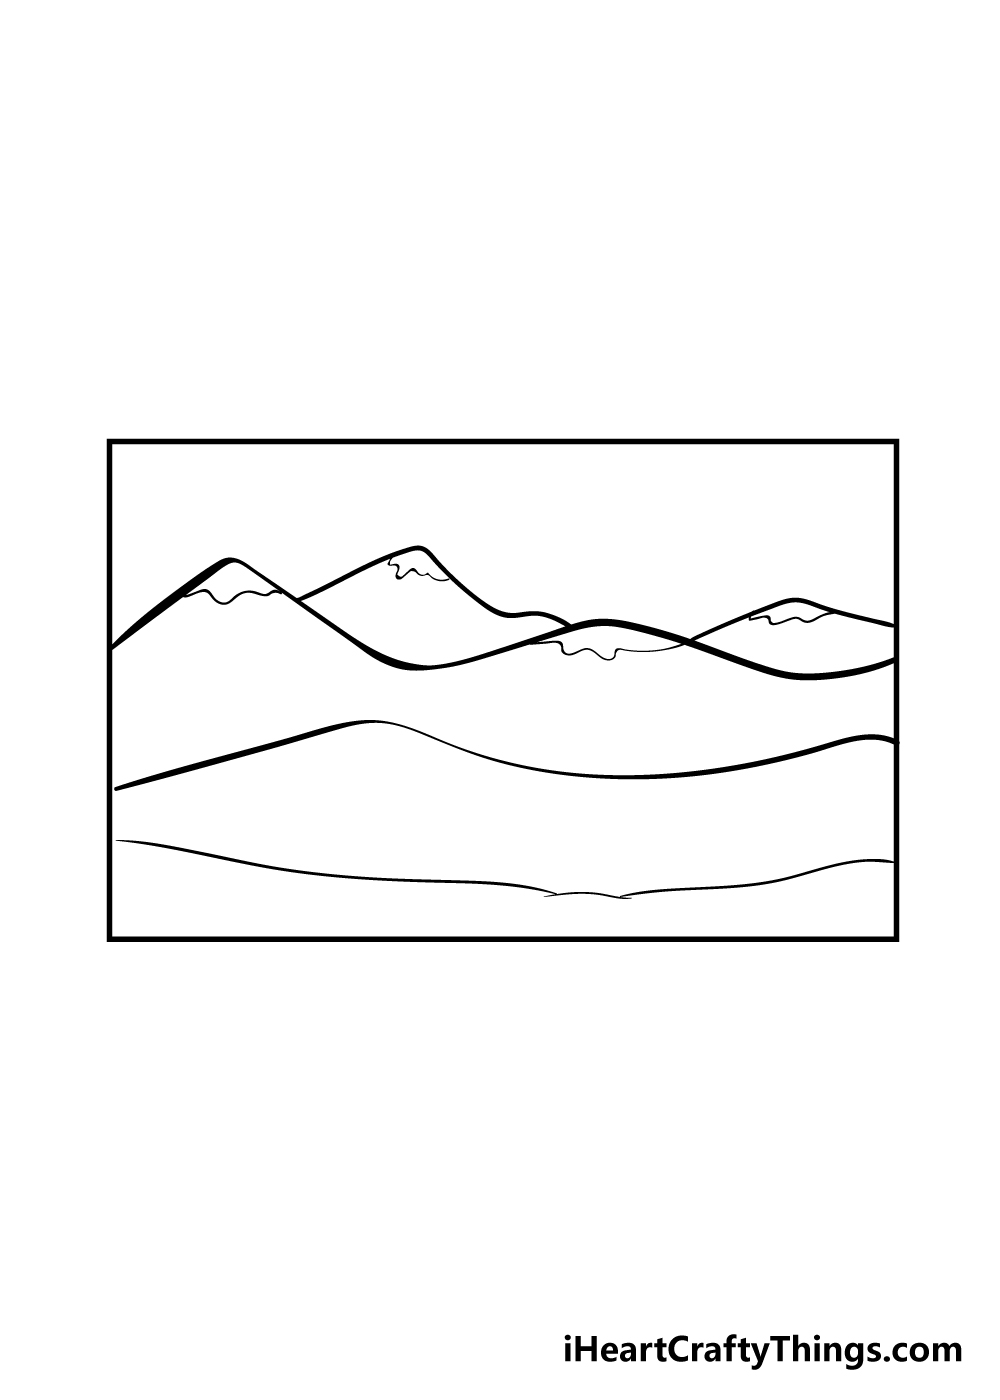 mountain drawing step 5